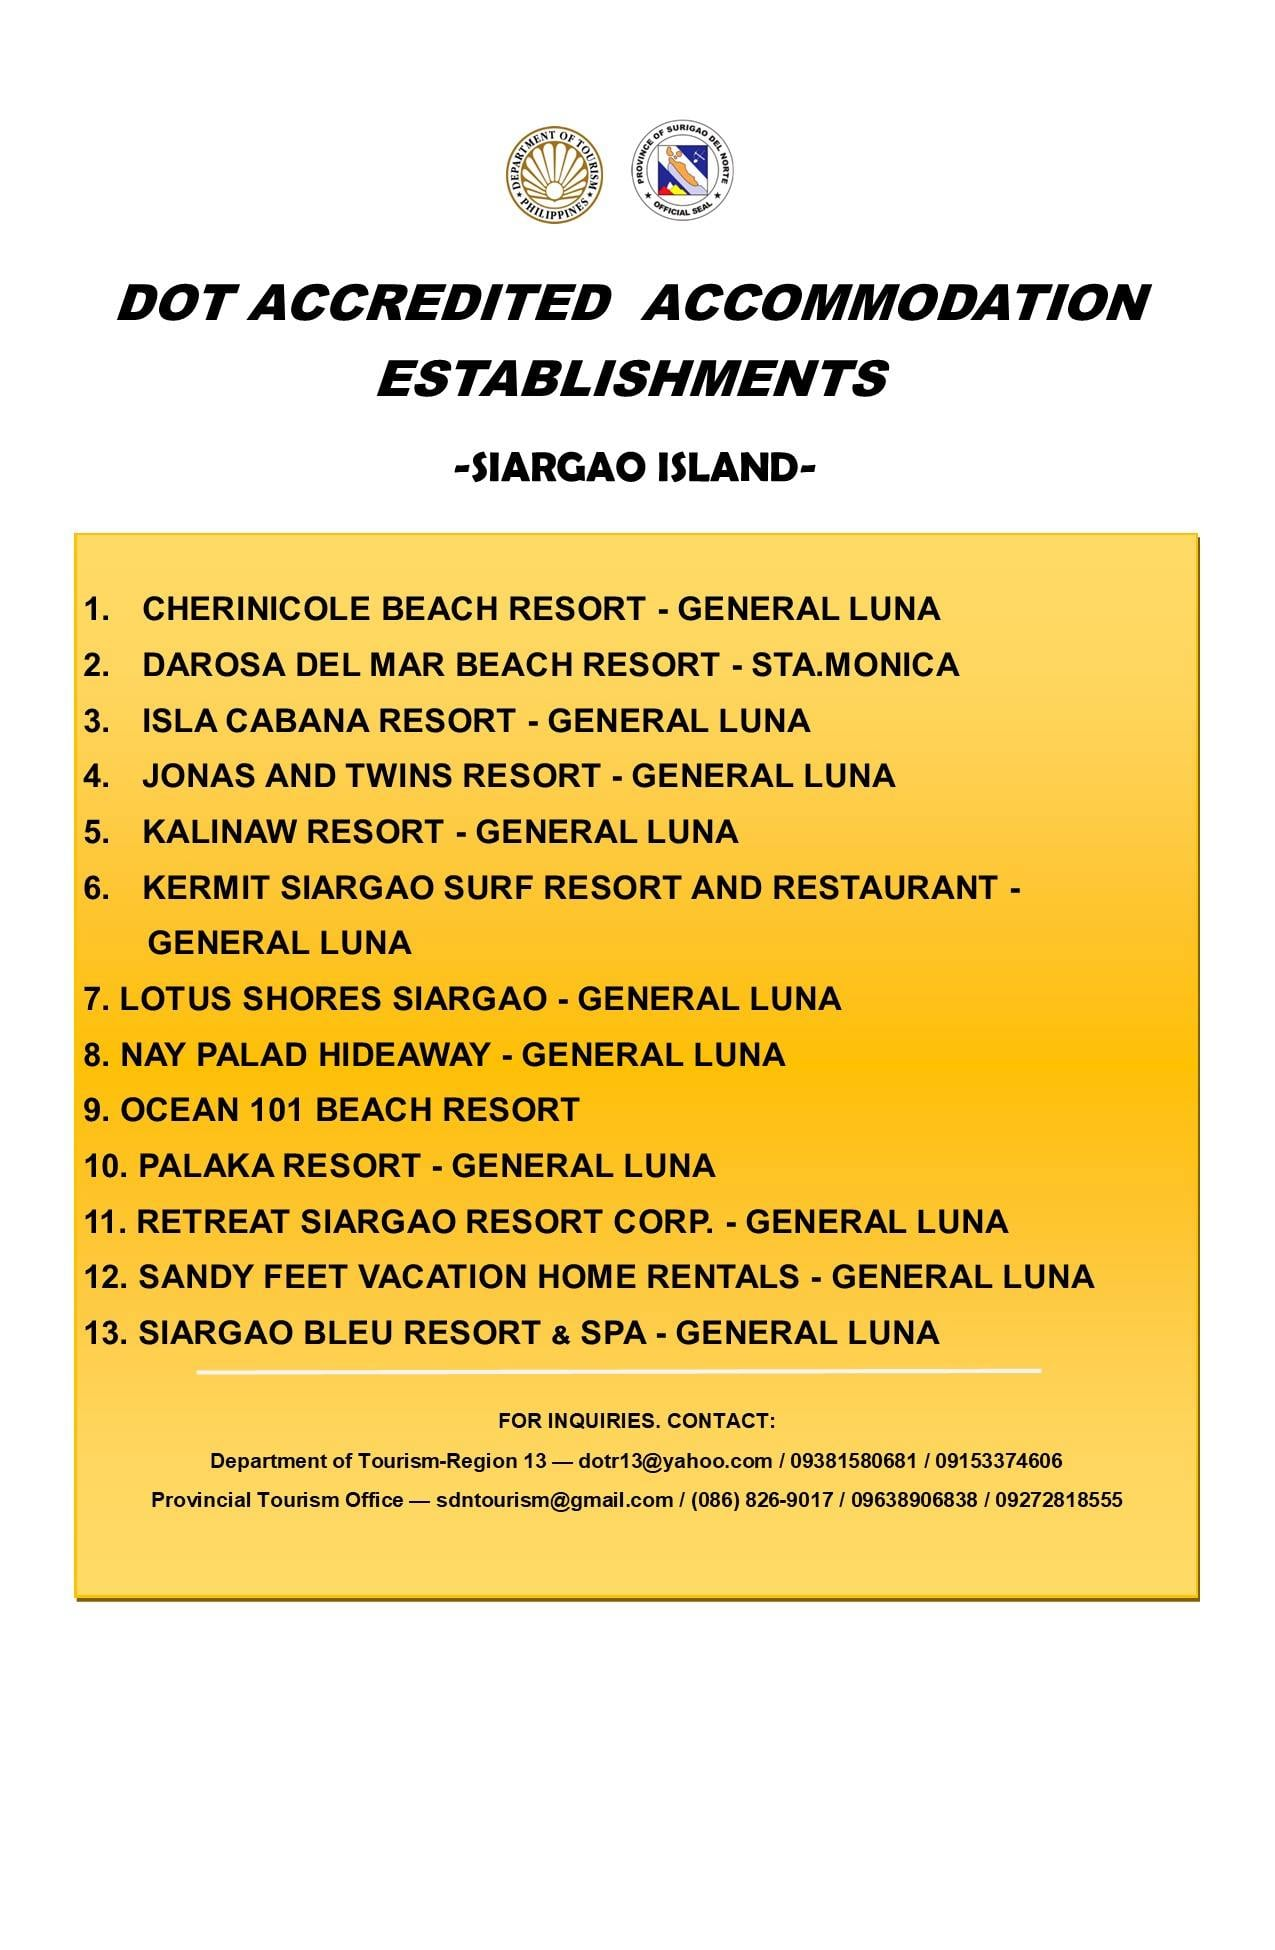 Hotel Resorts Allowed to operate